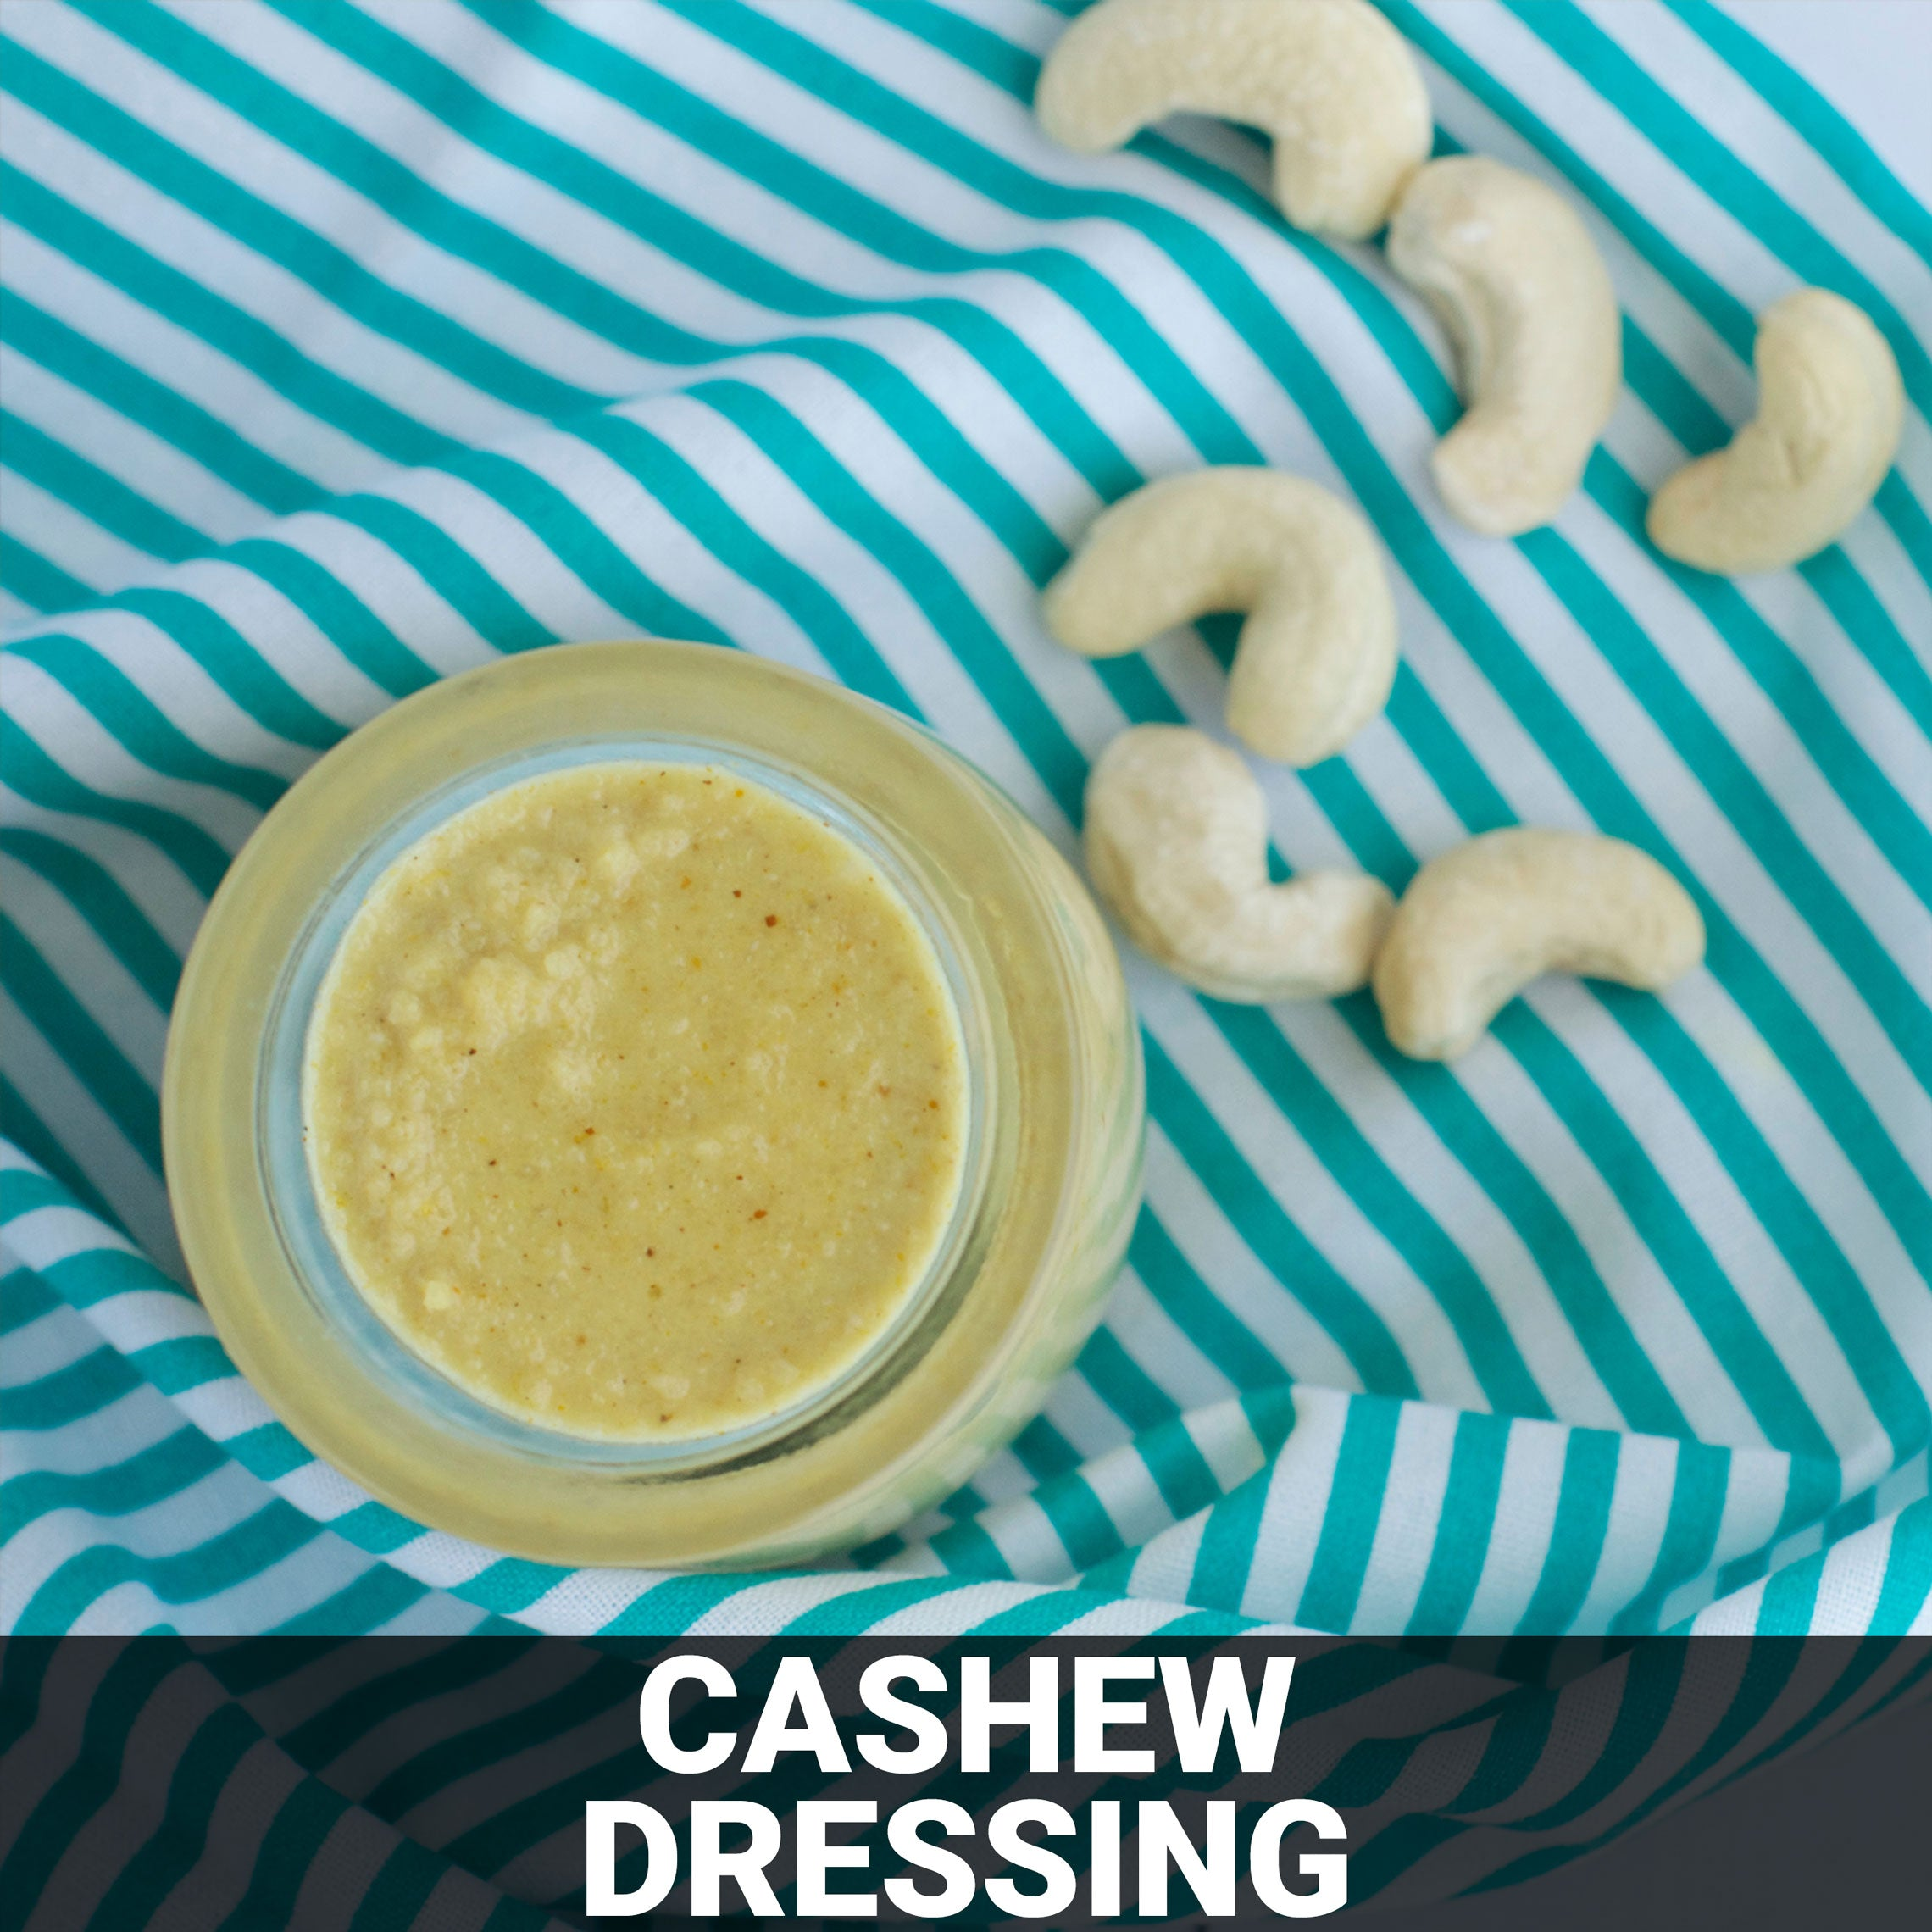 Cashew Dressing Recipe - Foods Alive